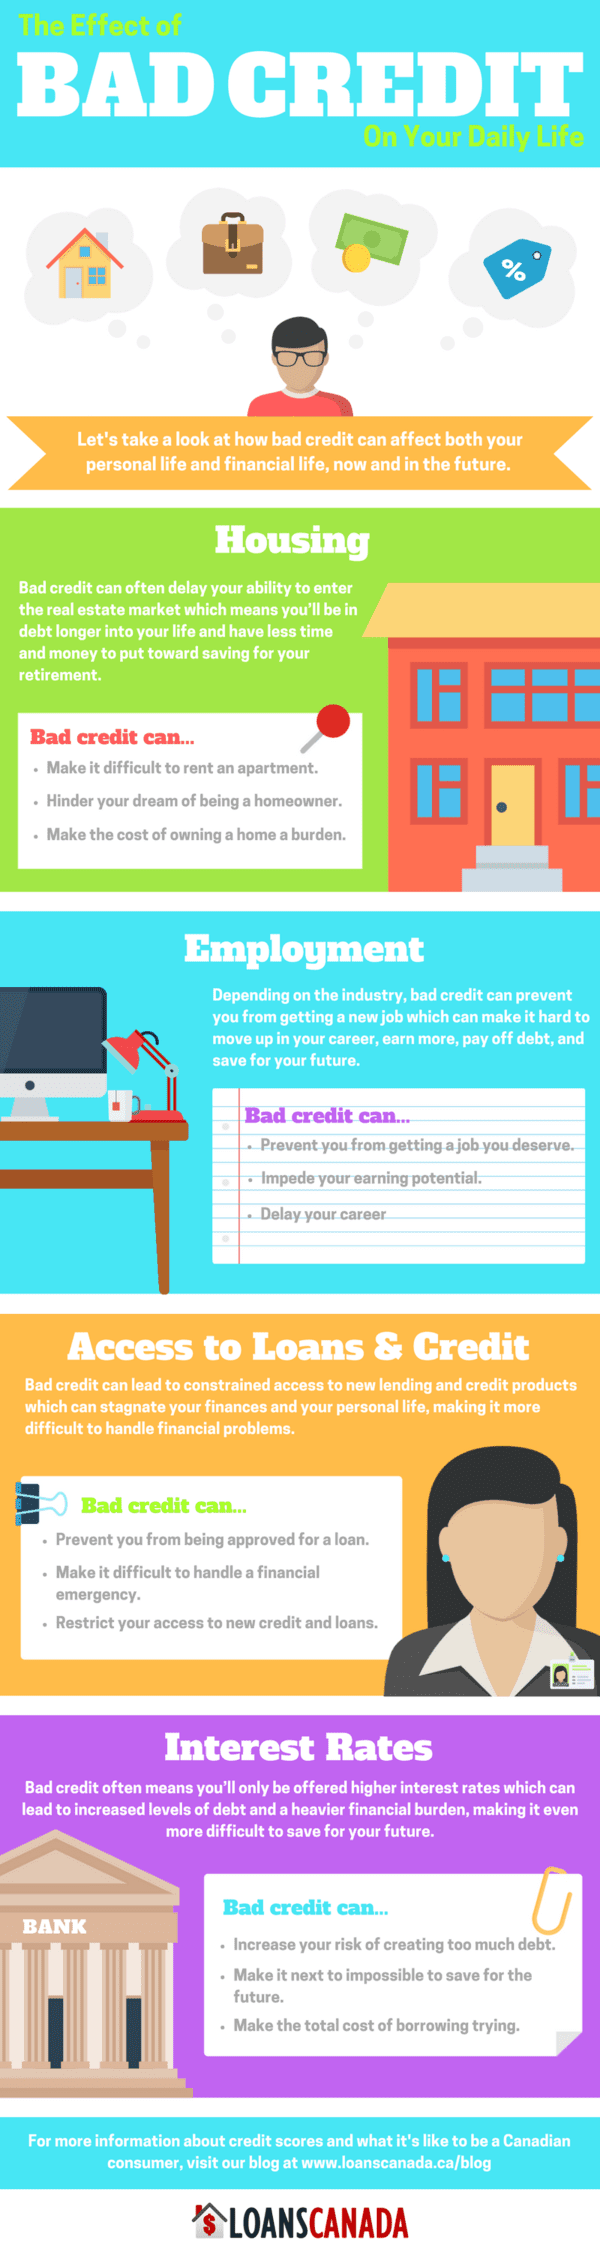 How Bad Credit Affects Your Daily Life